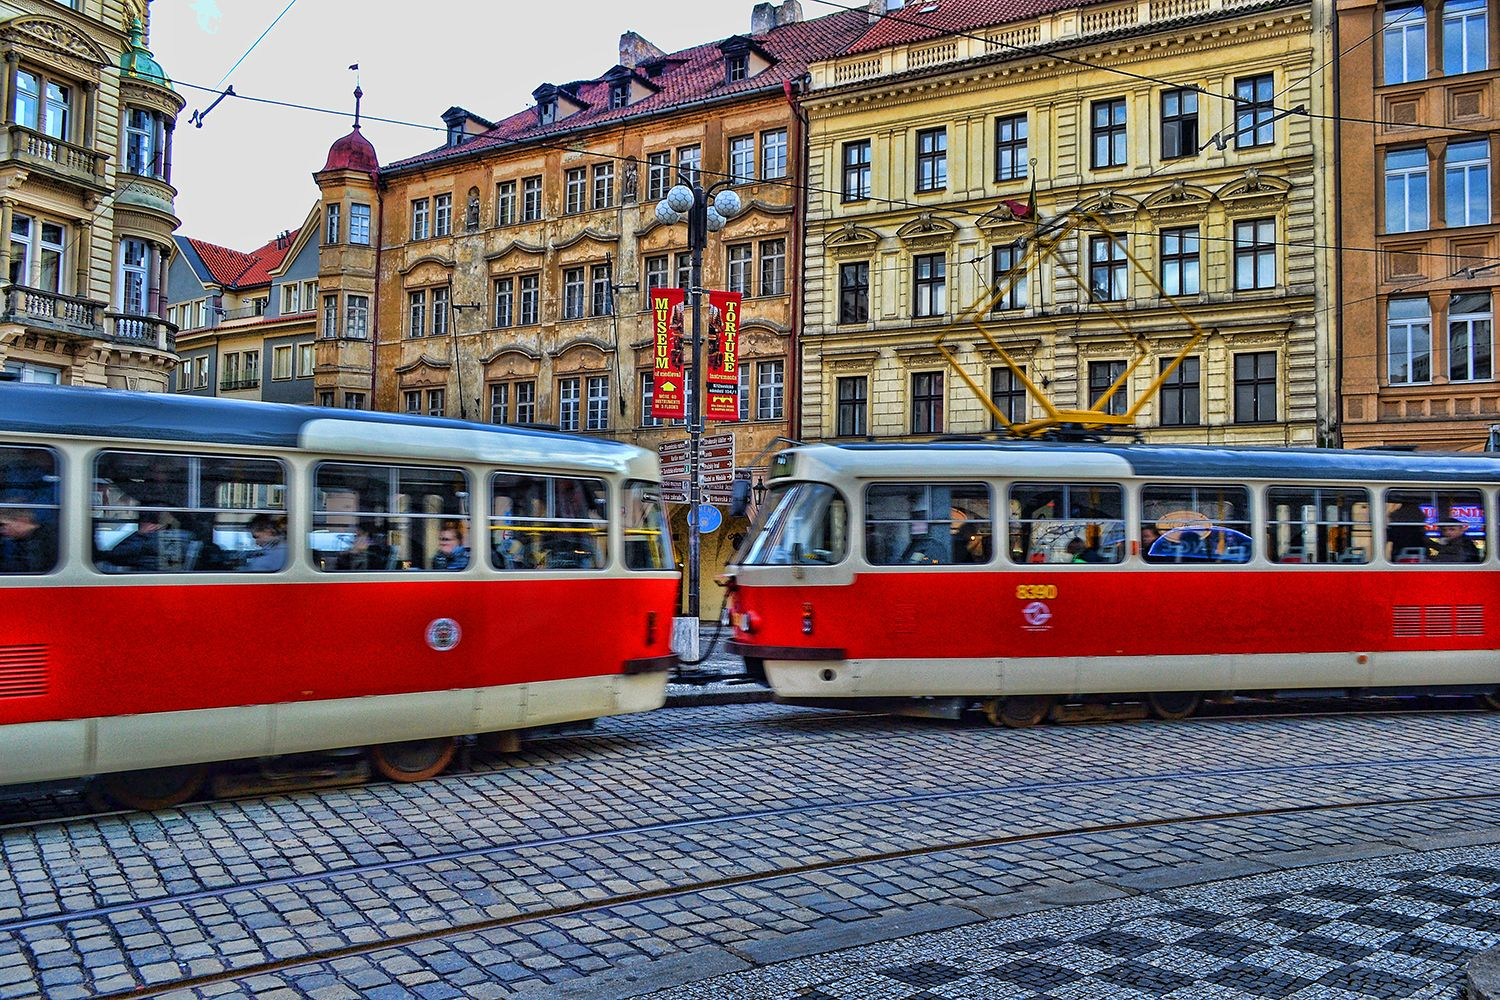 The classic beauty and colours of #Prague #OldTown ~ #CzechRepublic